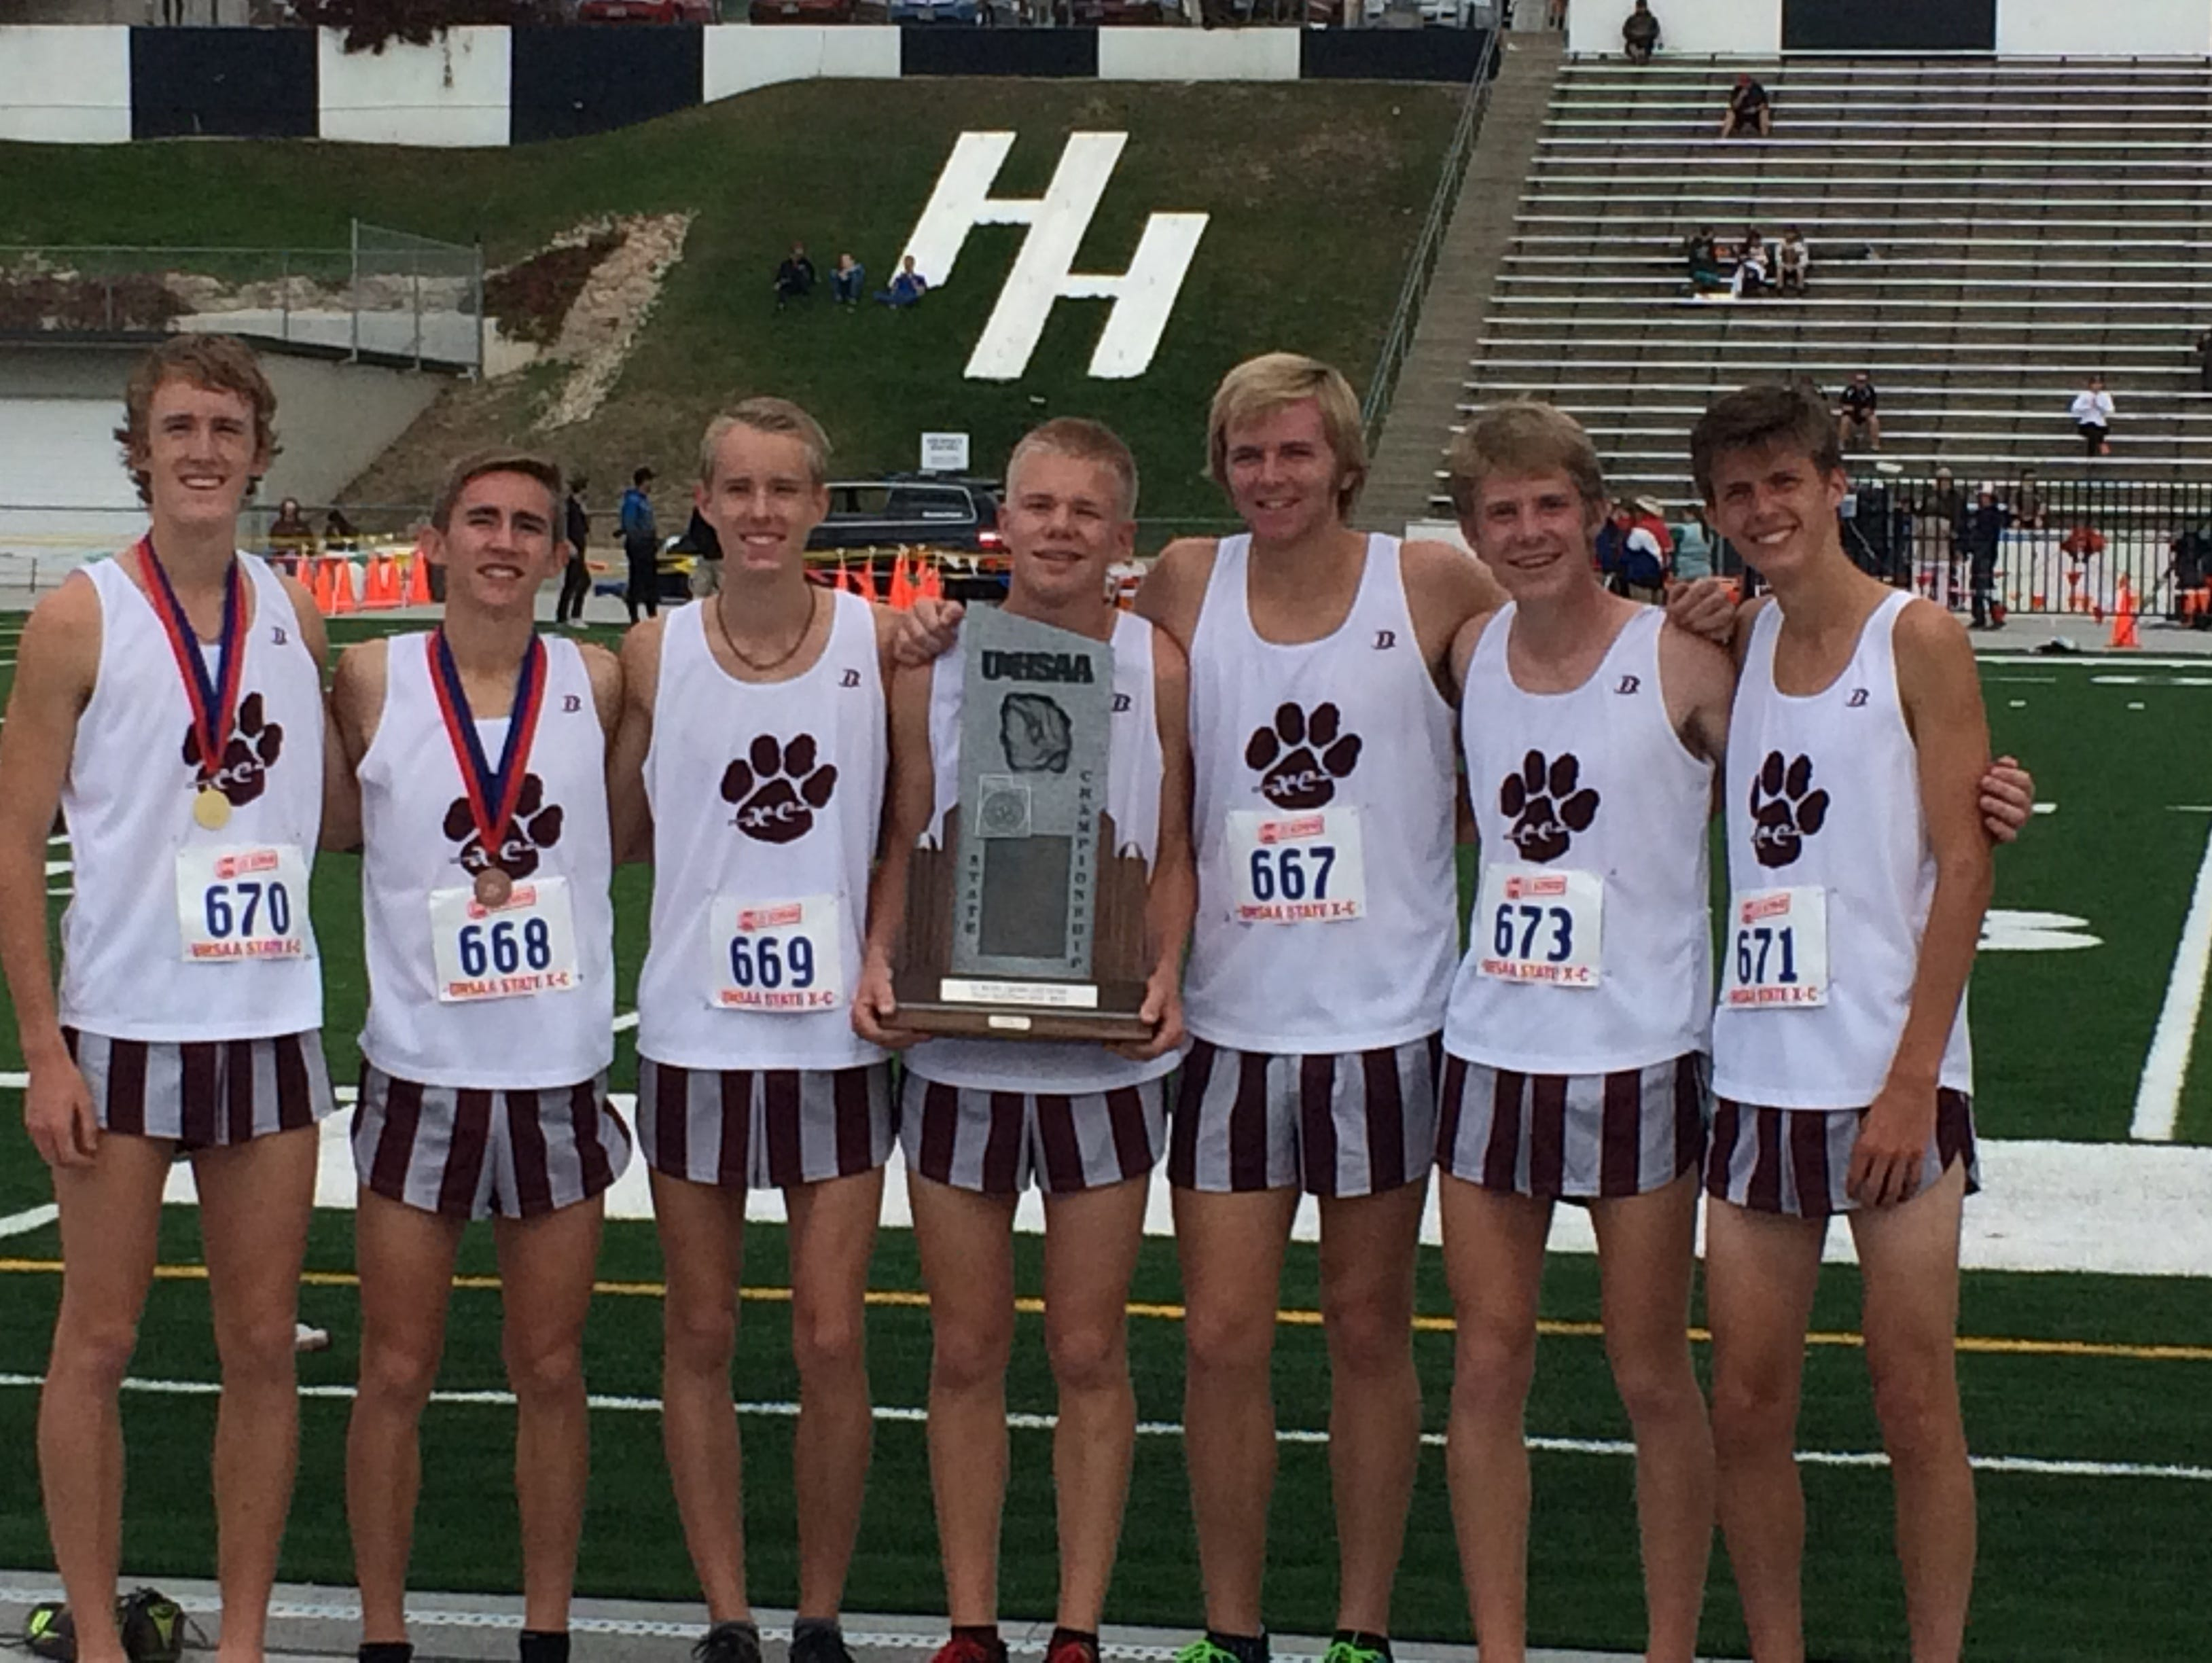 Pine View took second place during the 3A state cross country meet at Sugar House Park on Wednesday.